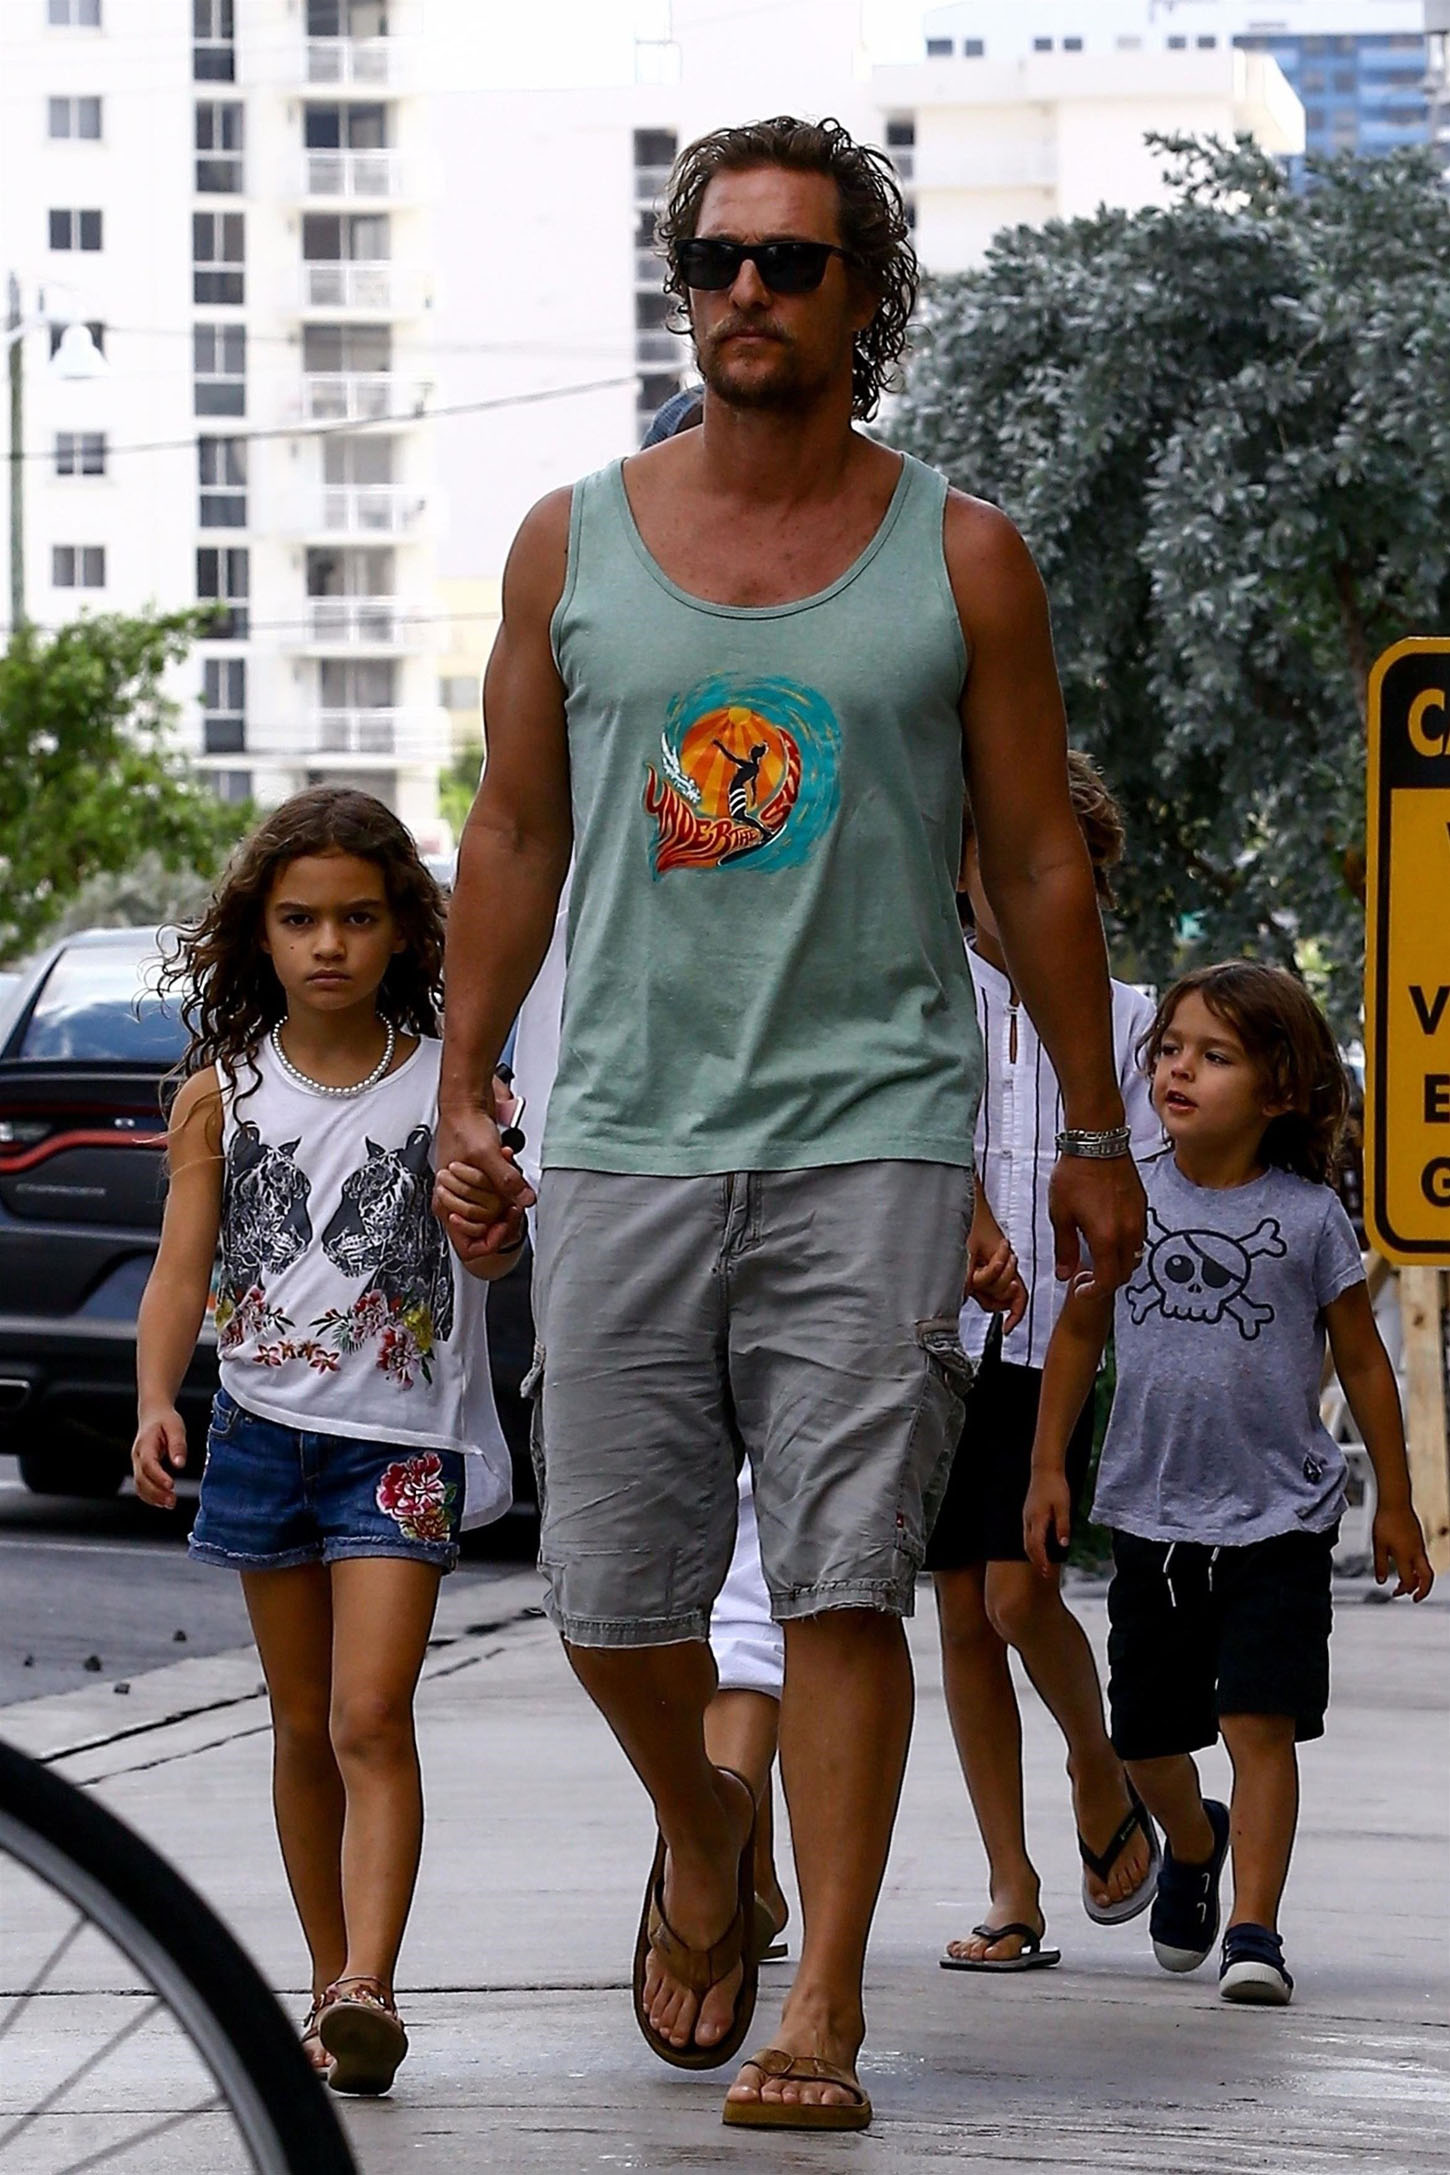 Miami, FL  - Actor Matthew McConaughey and his wife Camila Alves are spotted out and about during their family vacation in Miami with their children Livingston, Levi, and Vida. Matthew is back in the states after attending Guy Oseary's star-studded wedding Rio de Janeiro.  Pictured: Matthew McConaughey, Camila Alves, Levi Alves McConaughey, Vida Alves McConaughey, Livingston Alves     *UK Clients - Pictures Containing Children Please Pixelate Face Prior To Publication*, Image: 354053660, License: Rights-managed, Restrictions: , Model Release: no, Credit line: Profimedia, AKM-GSI